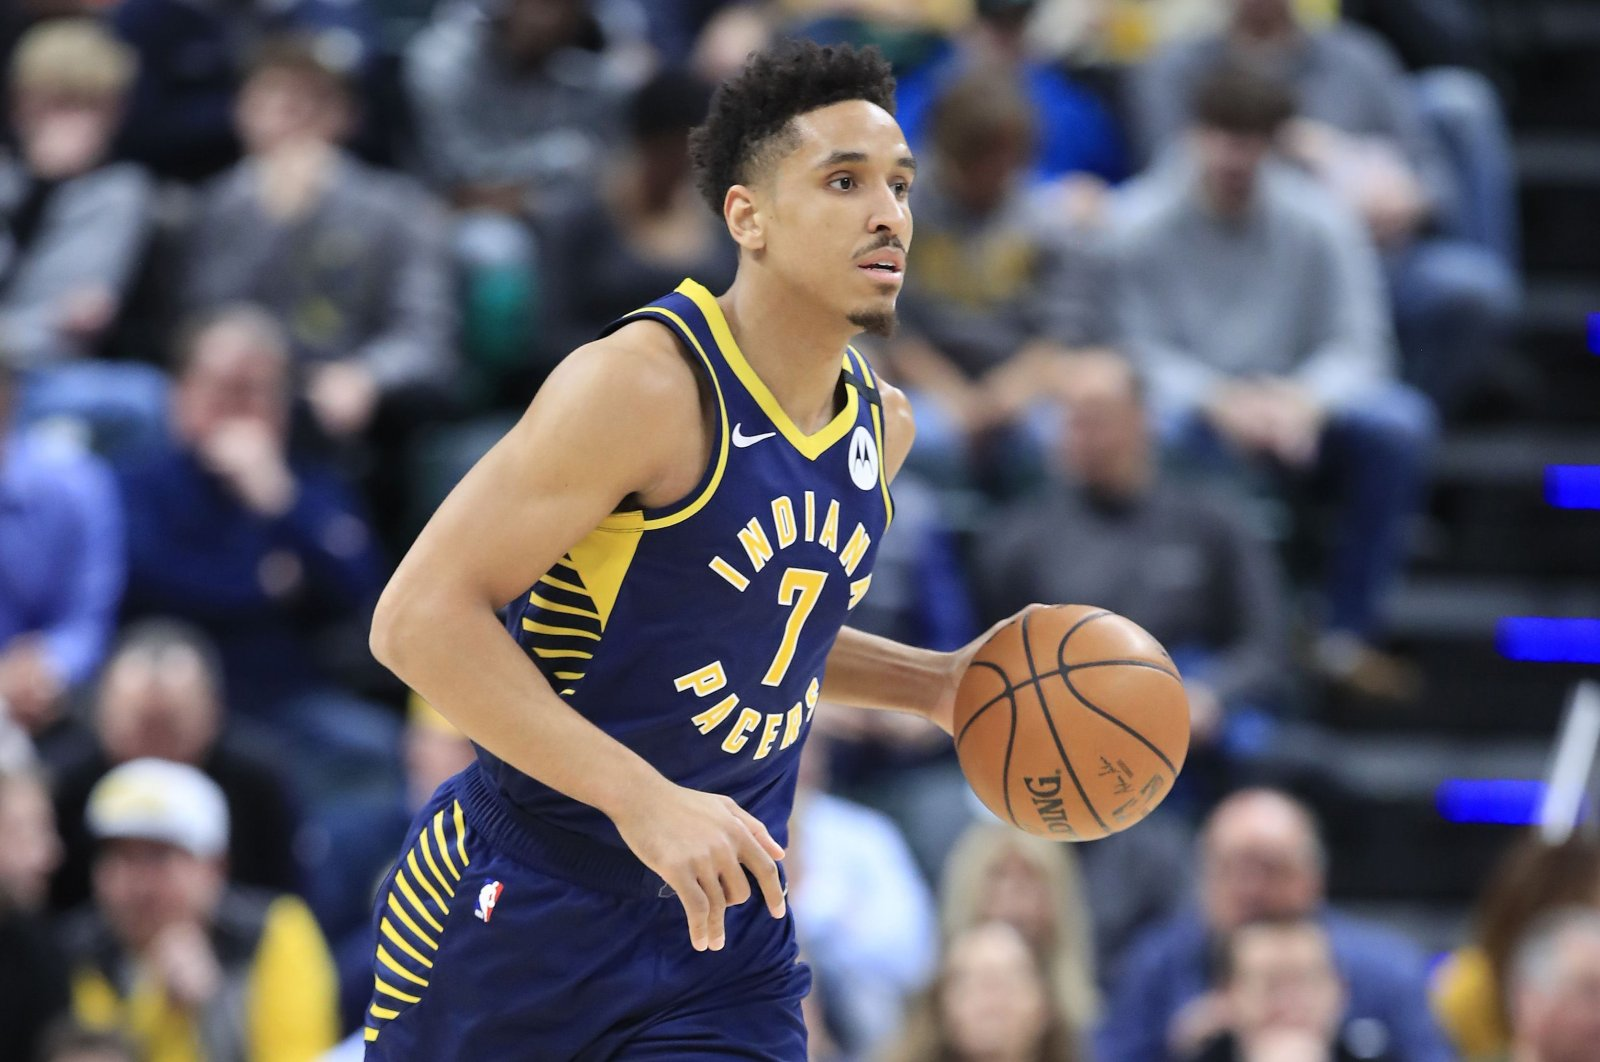 Malcolm Brogdon of the Indiana Pacers dribbles the ball in a match in Indianapolis, United States, Feb. 10, 2020. (AFP Photo)